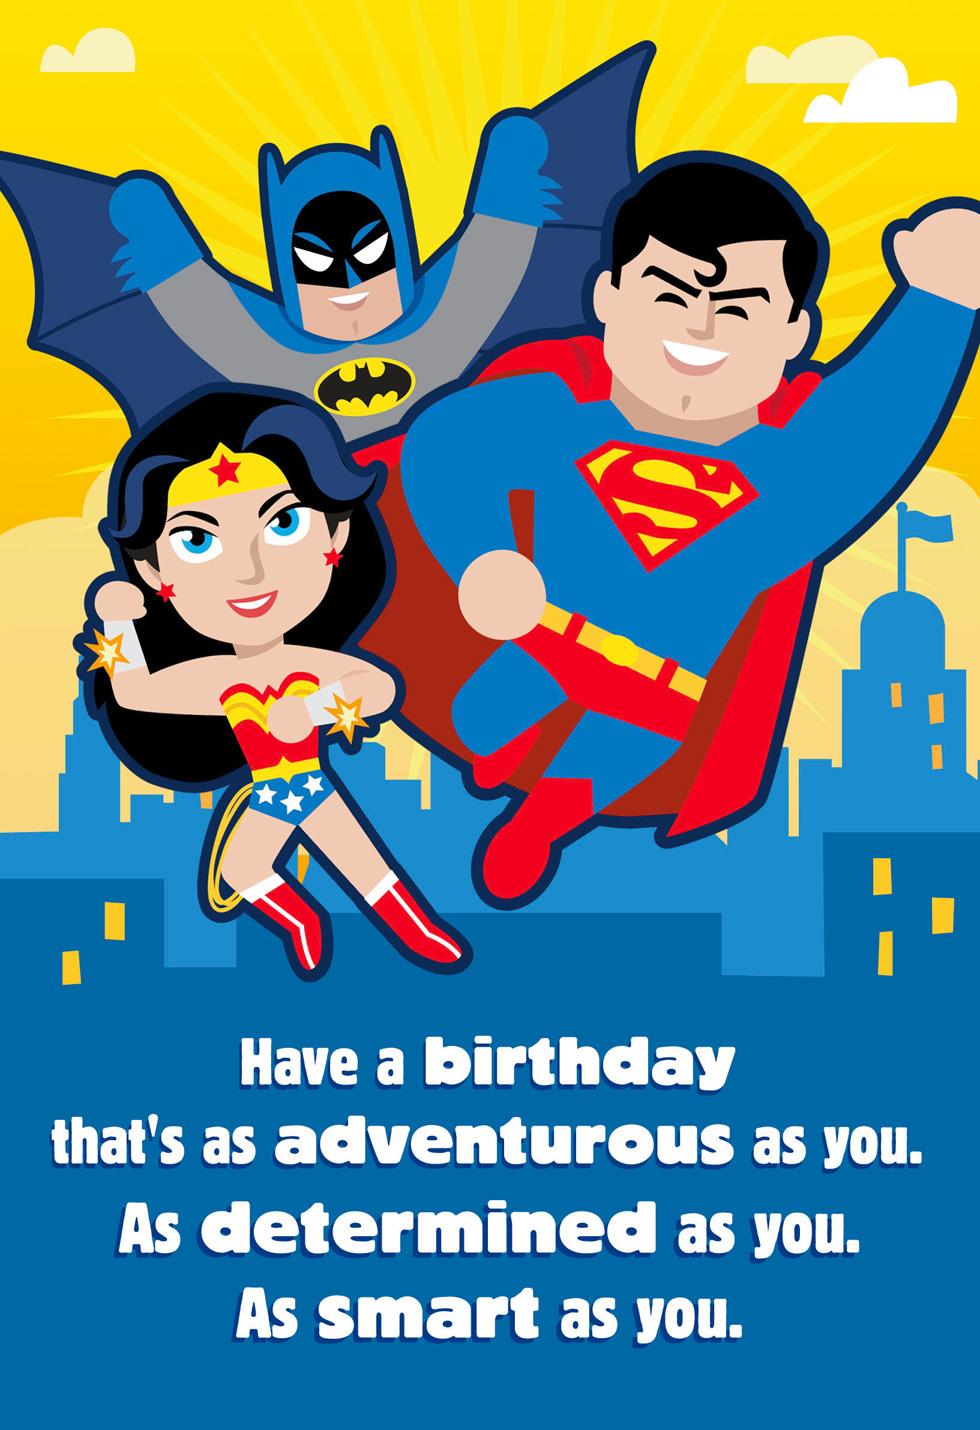 Justice League As Adventurous As You Musical Birthday